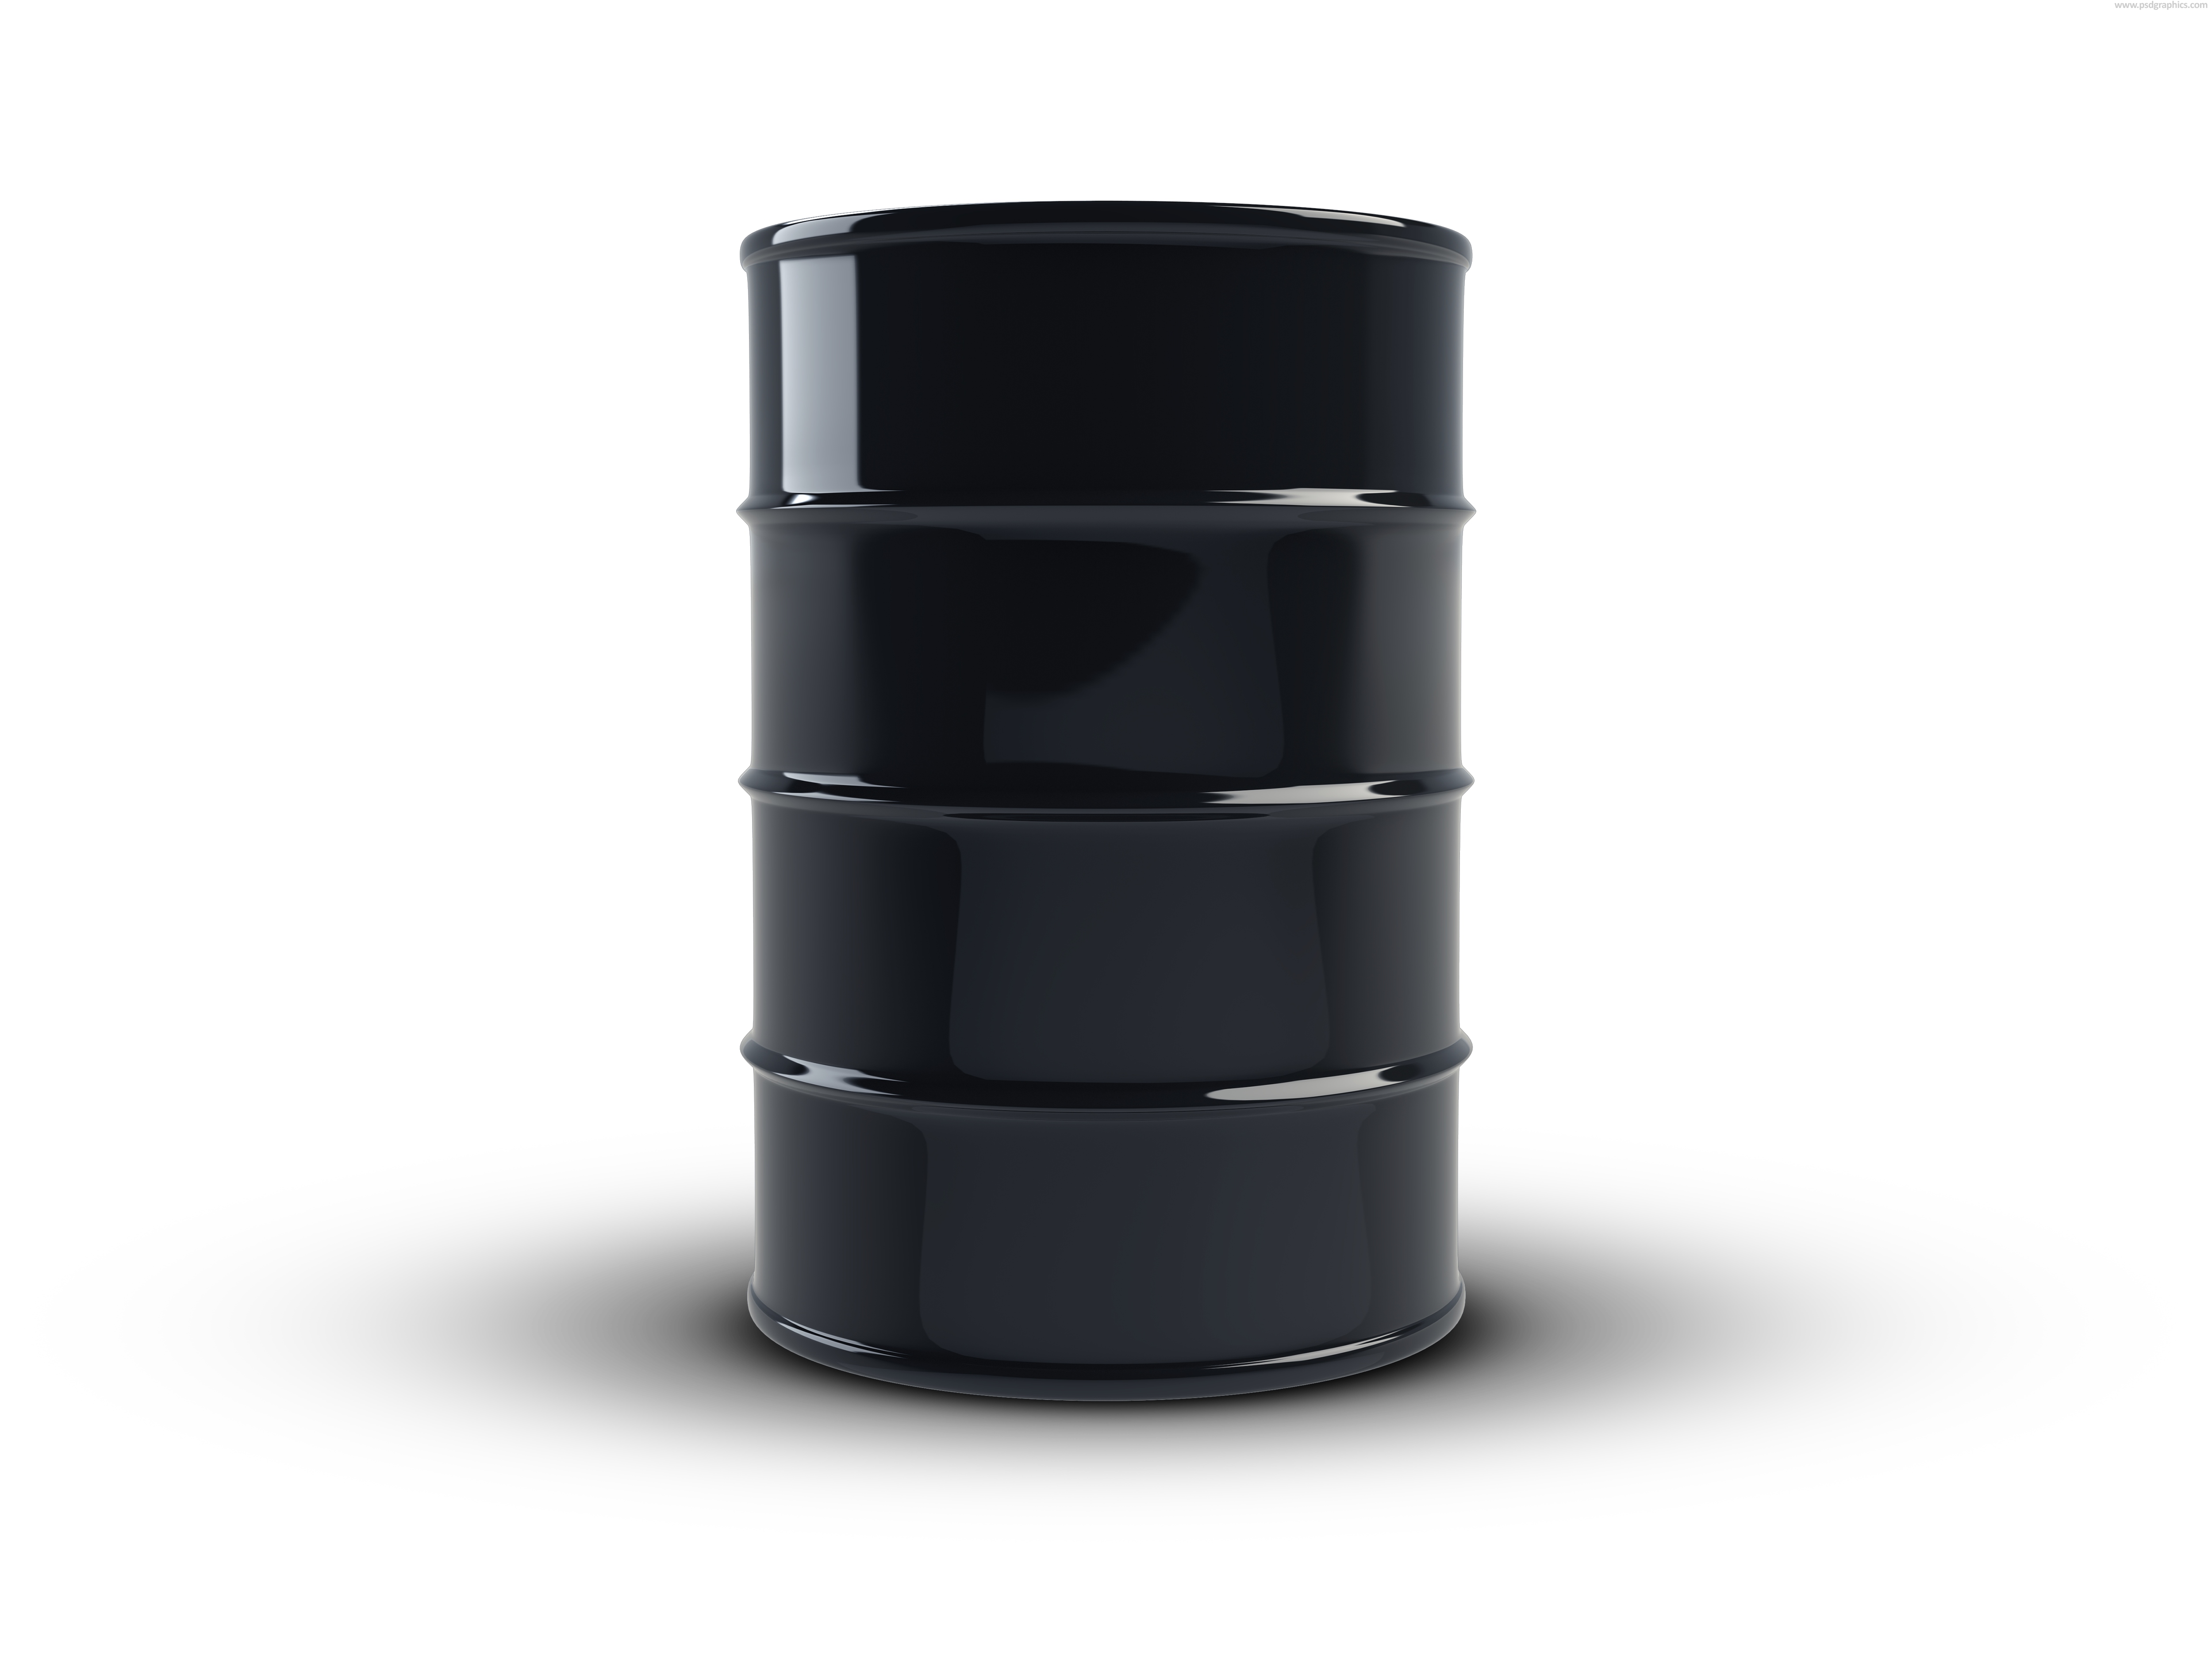 Barrel clipart oil barrel. Transparent png pictures free